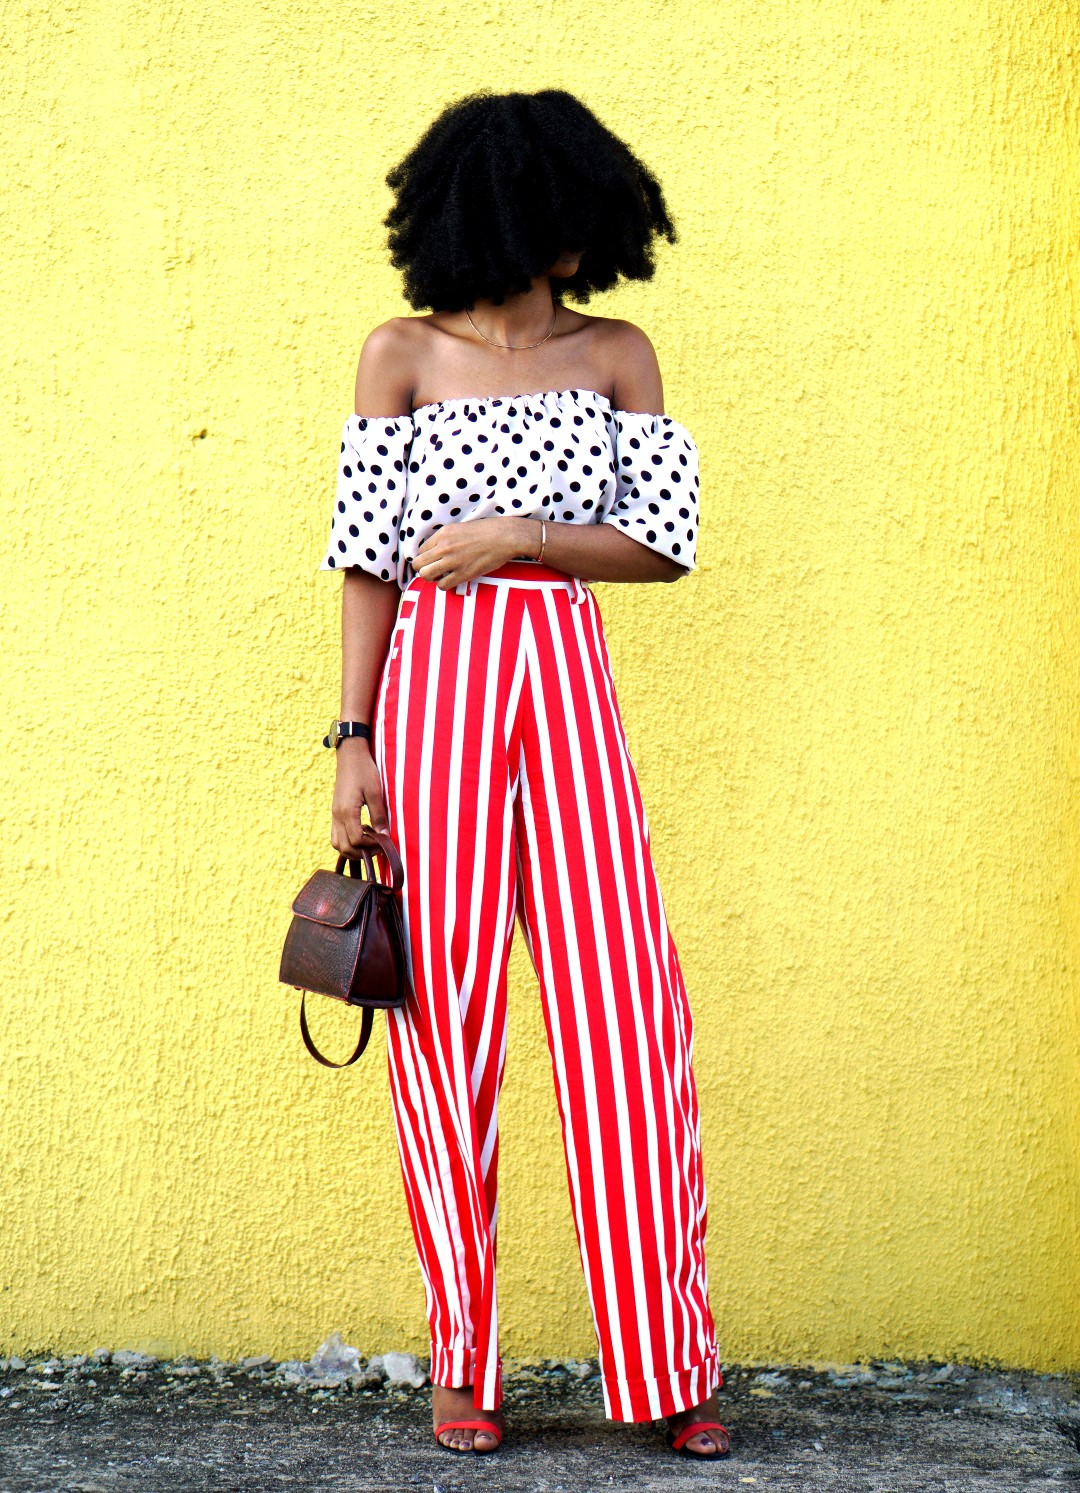 Mixed prints fashion trend : Nigerian blogger Cassie Daves In a polka dot off shoulder top and striped pants